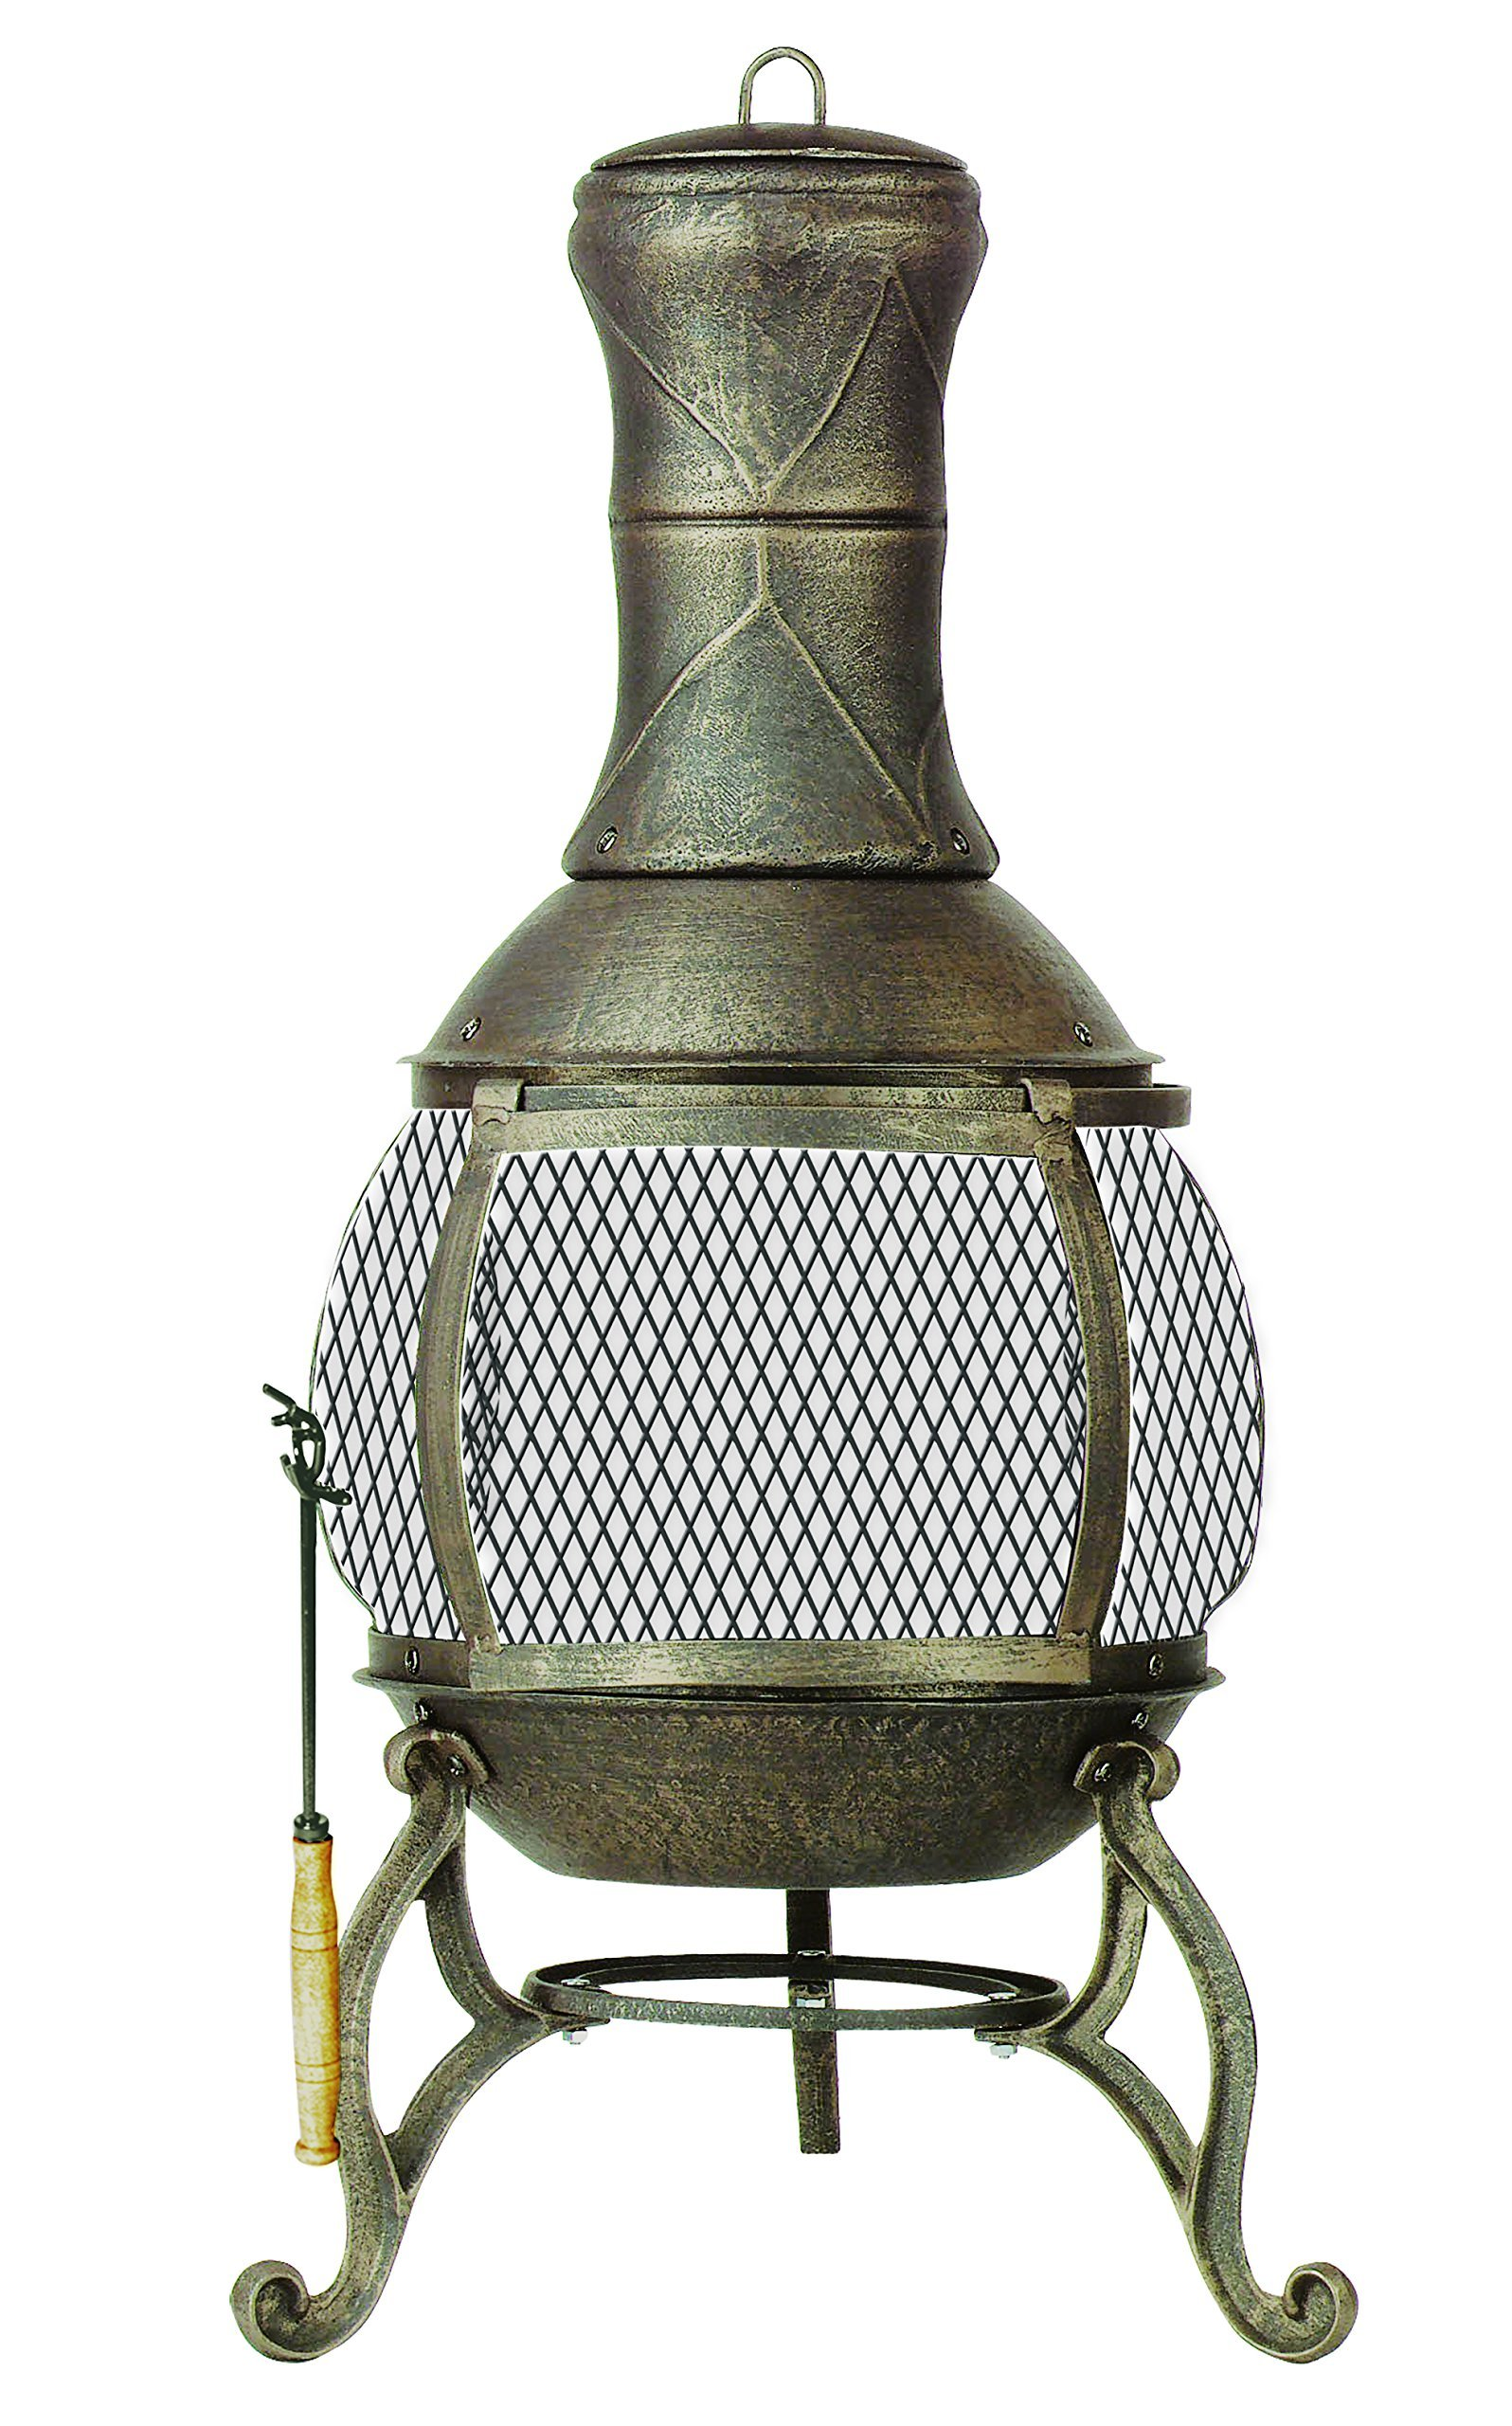 Deckmate Corona  Outdoor Chimenea  Fireplace Model  30075 (Renewed) by Kay Home Products